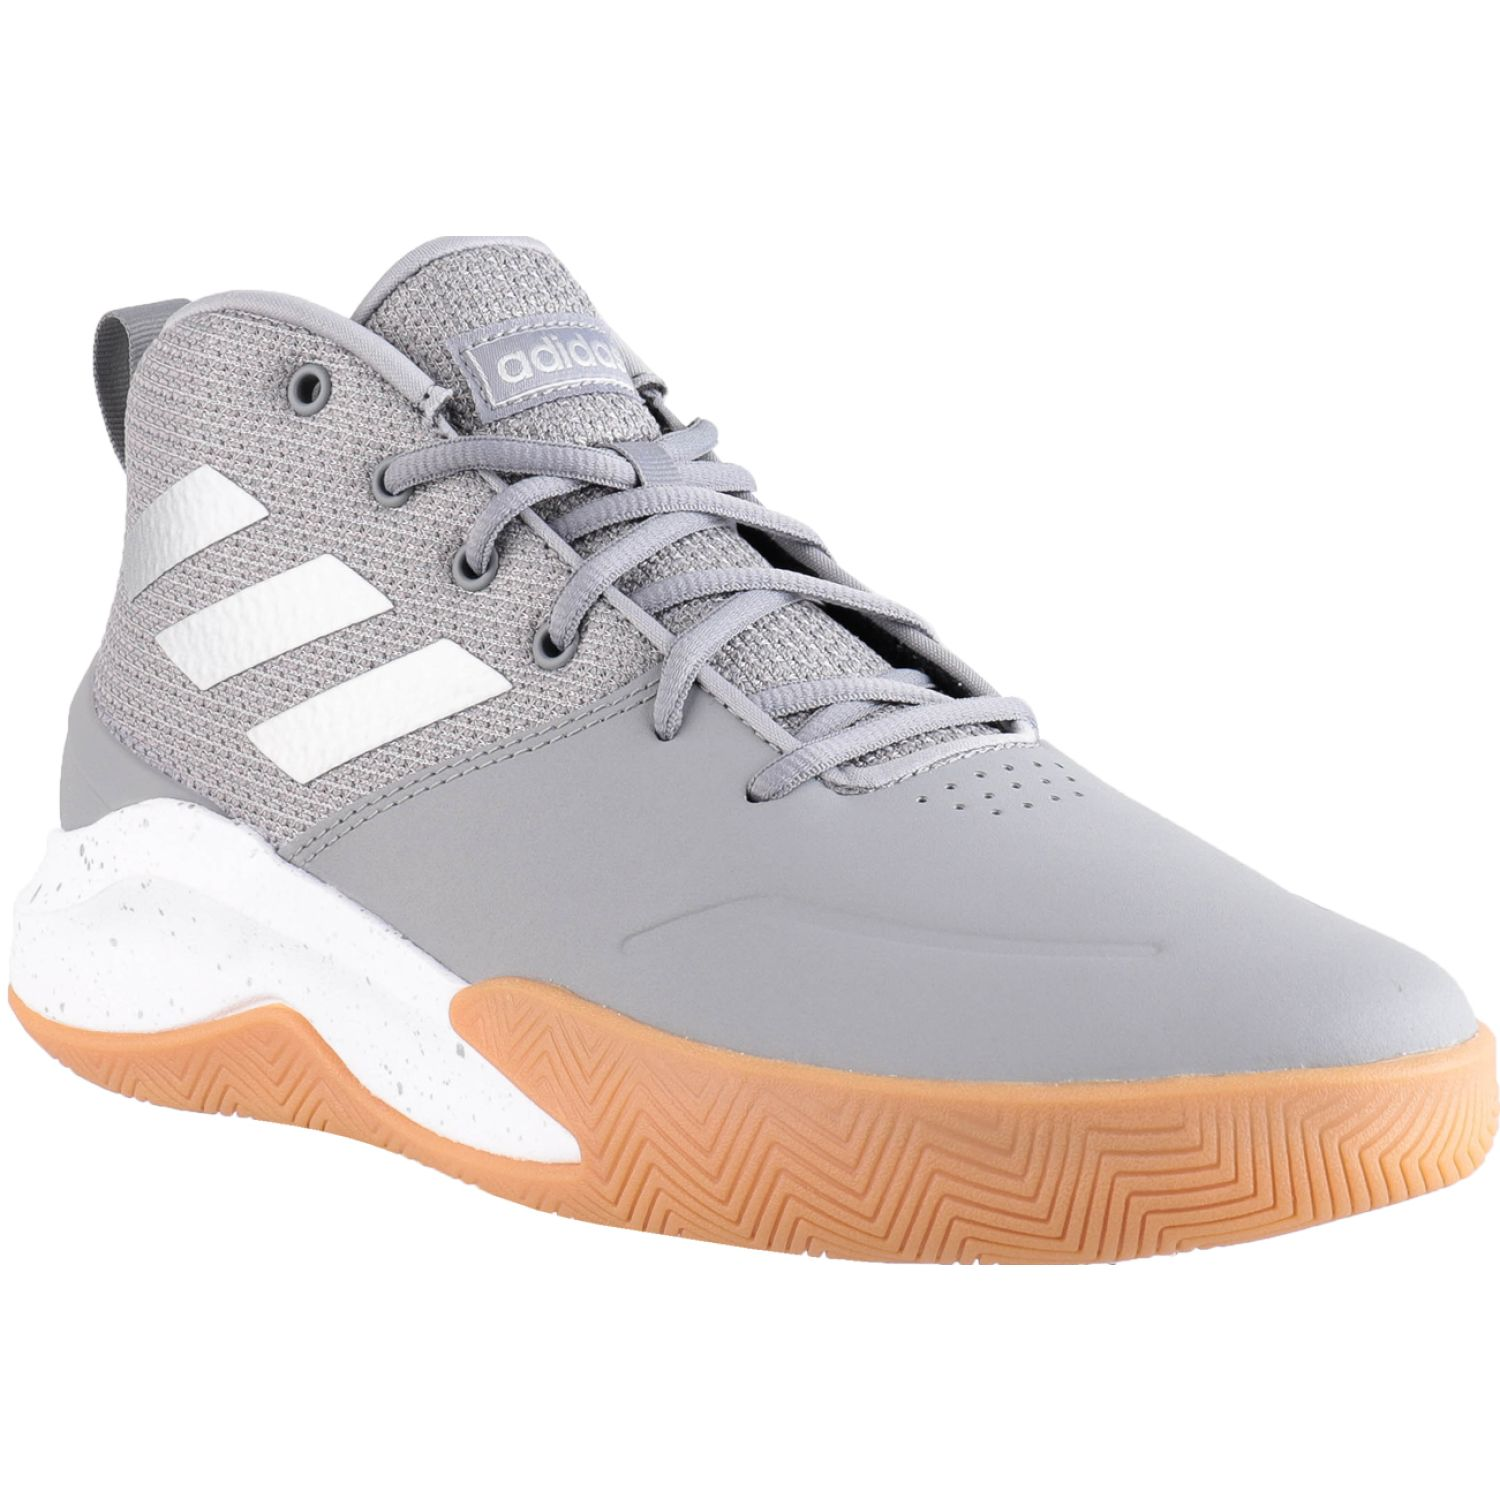 Adidas ownthegame Gris / blanco Hombres